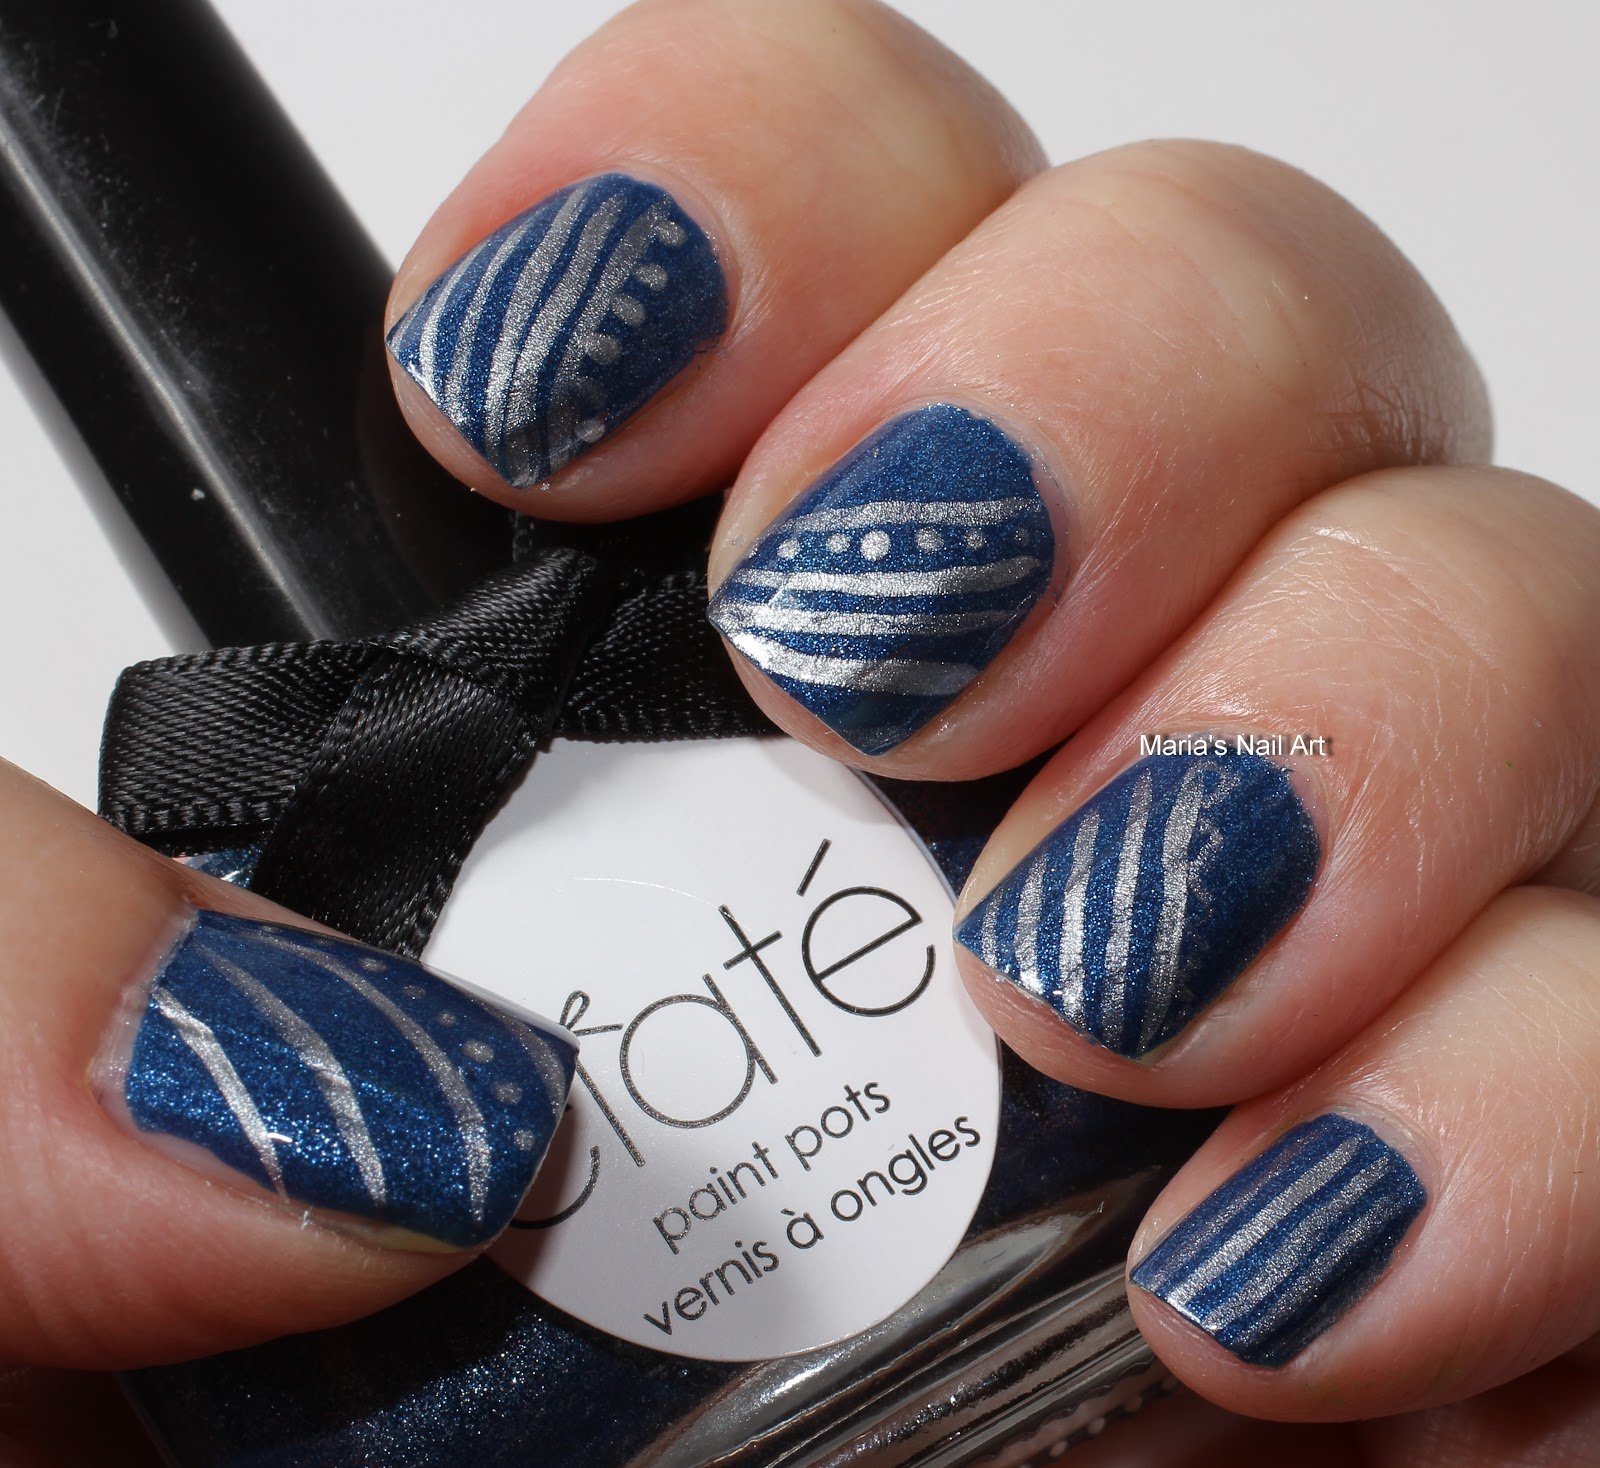 Marias Nail Art And Polish Blog Flushed With Stripes And: Marias Nail Art And Polish Blog: November 2012